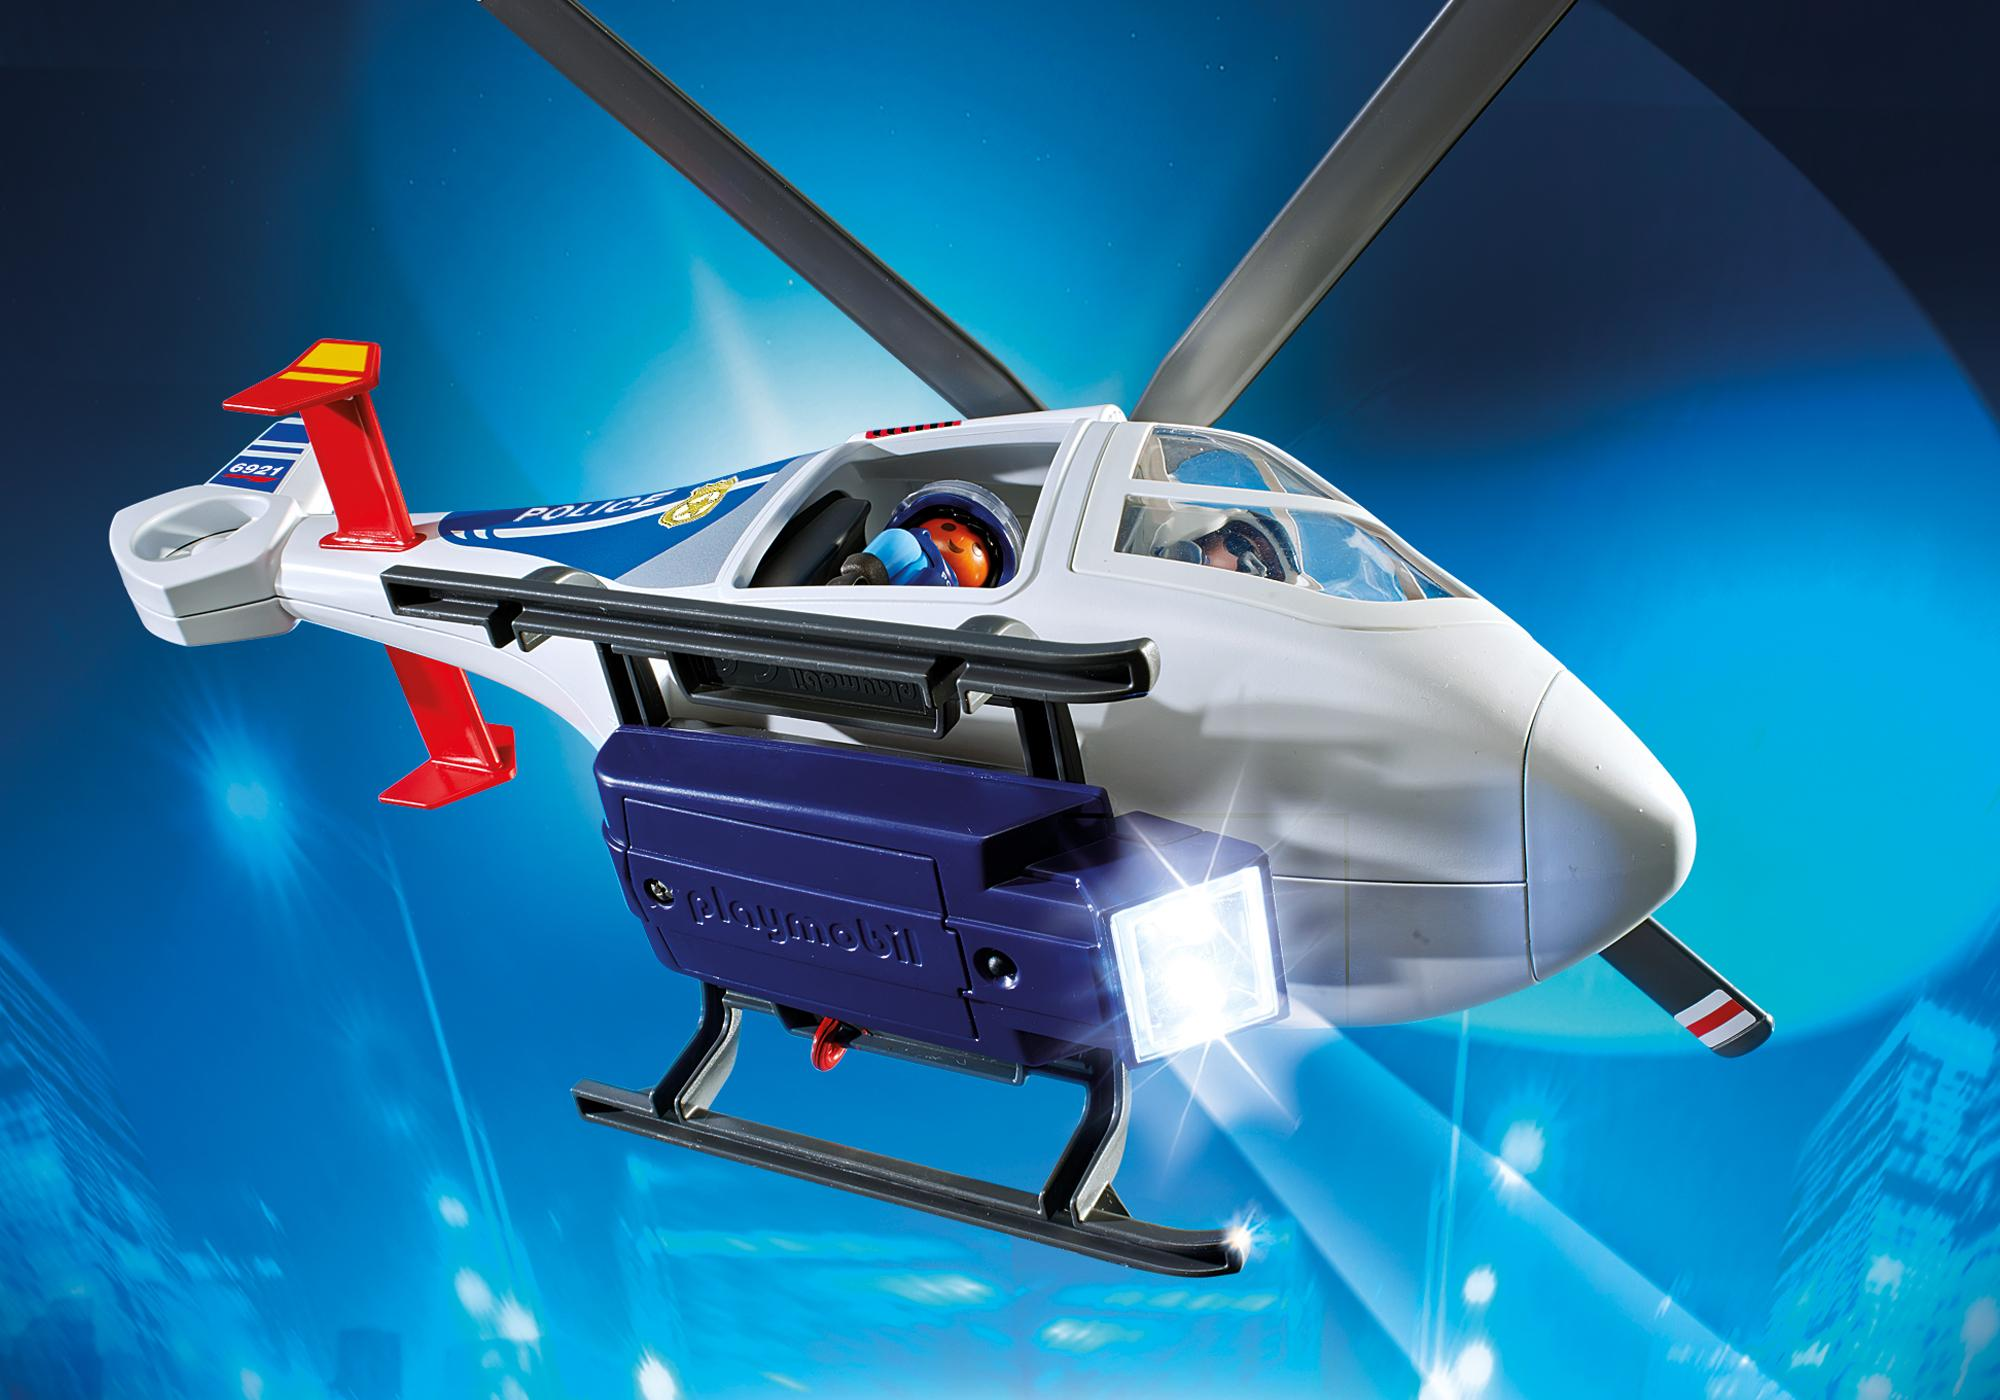 http://media.playmobil.com/i/playmobil/6921_product_extra3/Police Helicopter with LED Searchlight